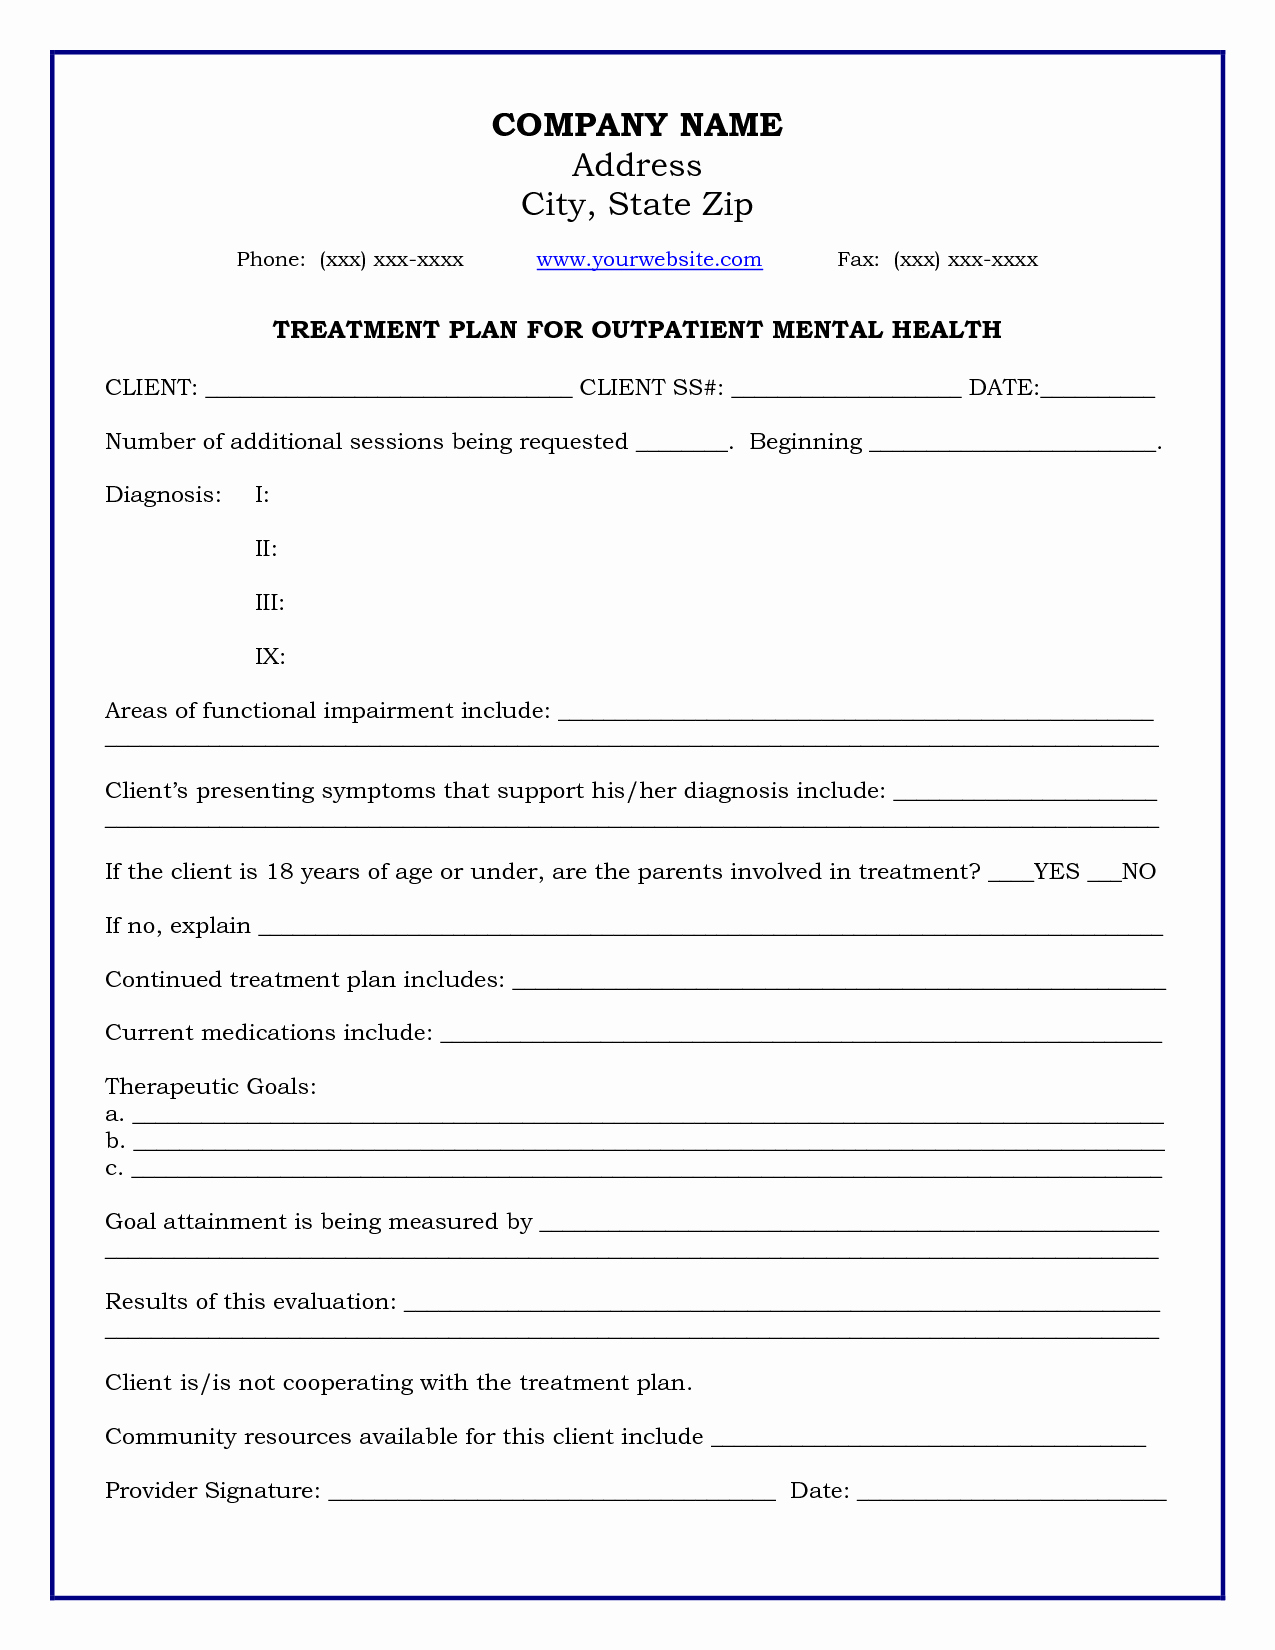 Treatment Plan Template Mental Health New Treatment Plan Template